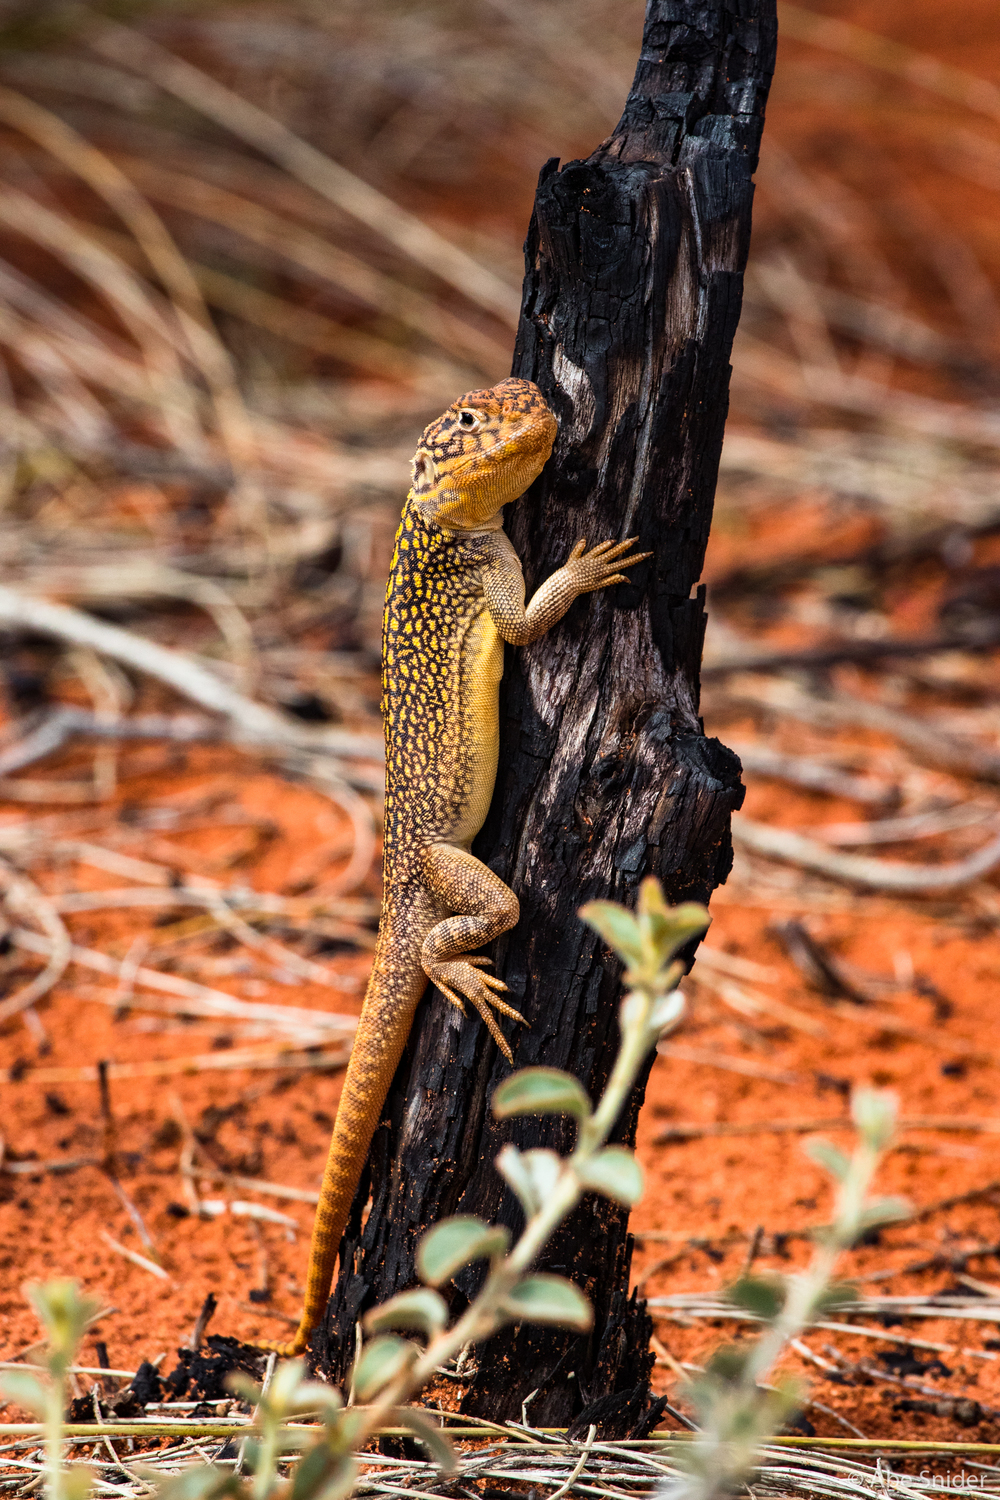 We caught this fairly large lizard sunbathing on some recently burned bush.